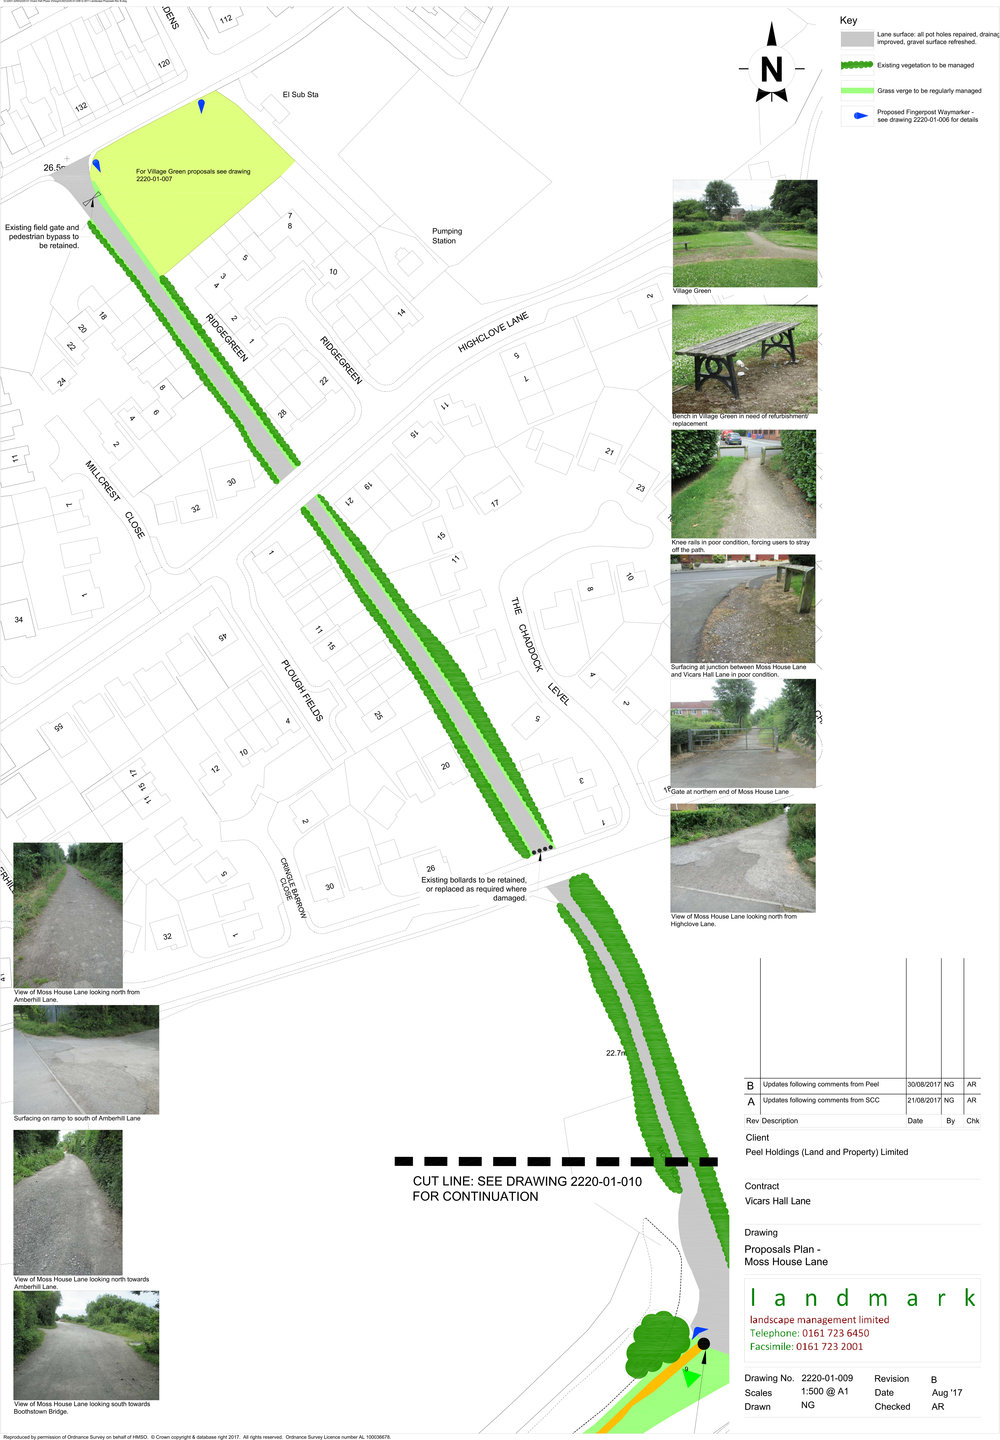 Moss House Lane Corridor Proposal